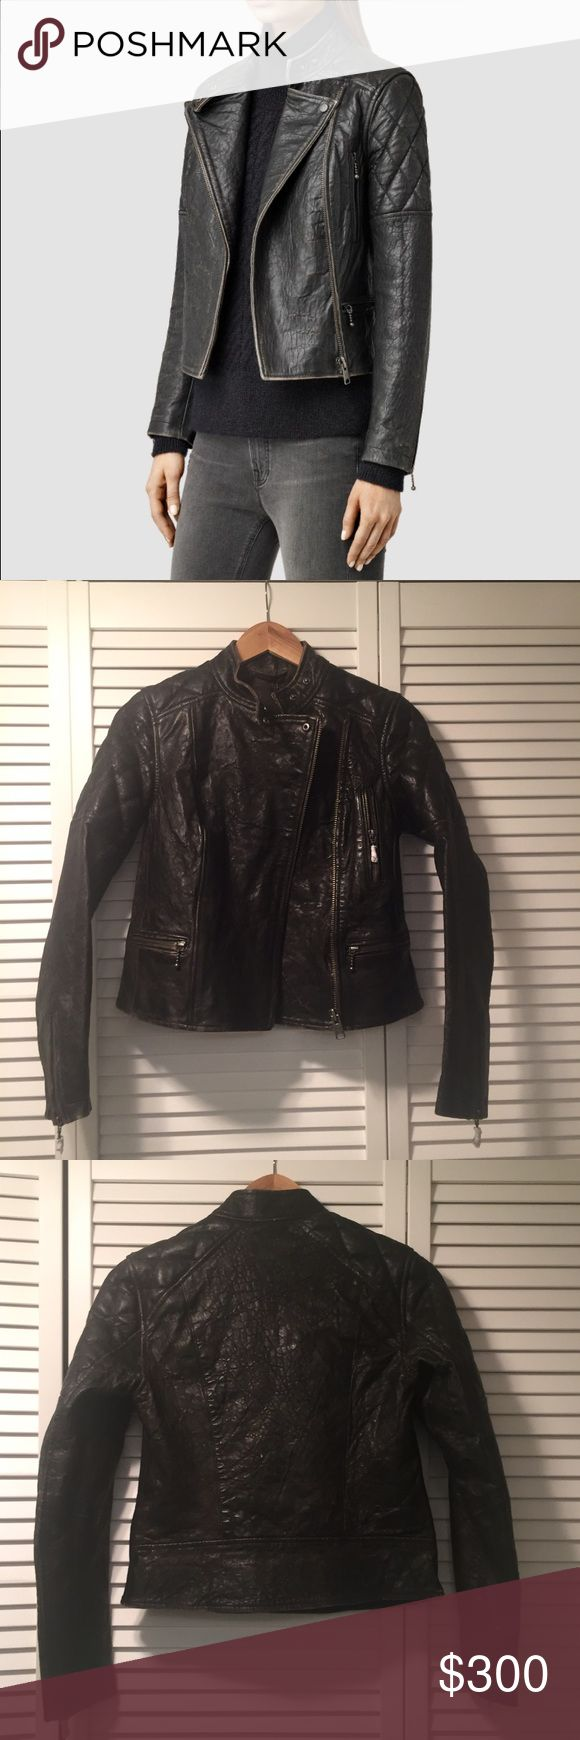 NWT all saints leather jacket Brand new jacket never work. Super luxurious feel. Distressed black leather. Last picture shows part of the distressed look. Very flattering staple leather jacket All Saints Jackets & Coats